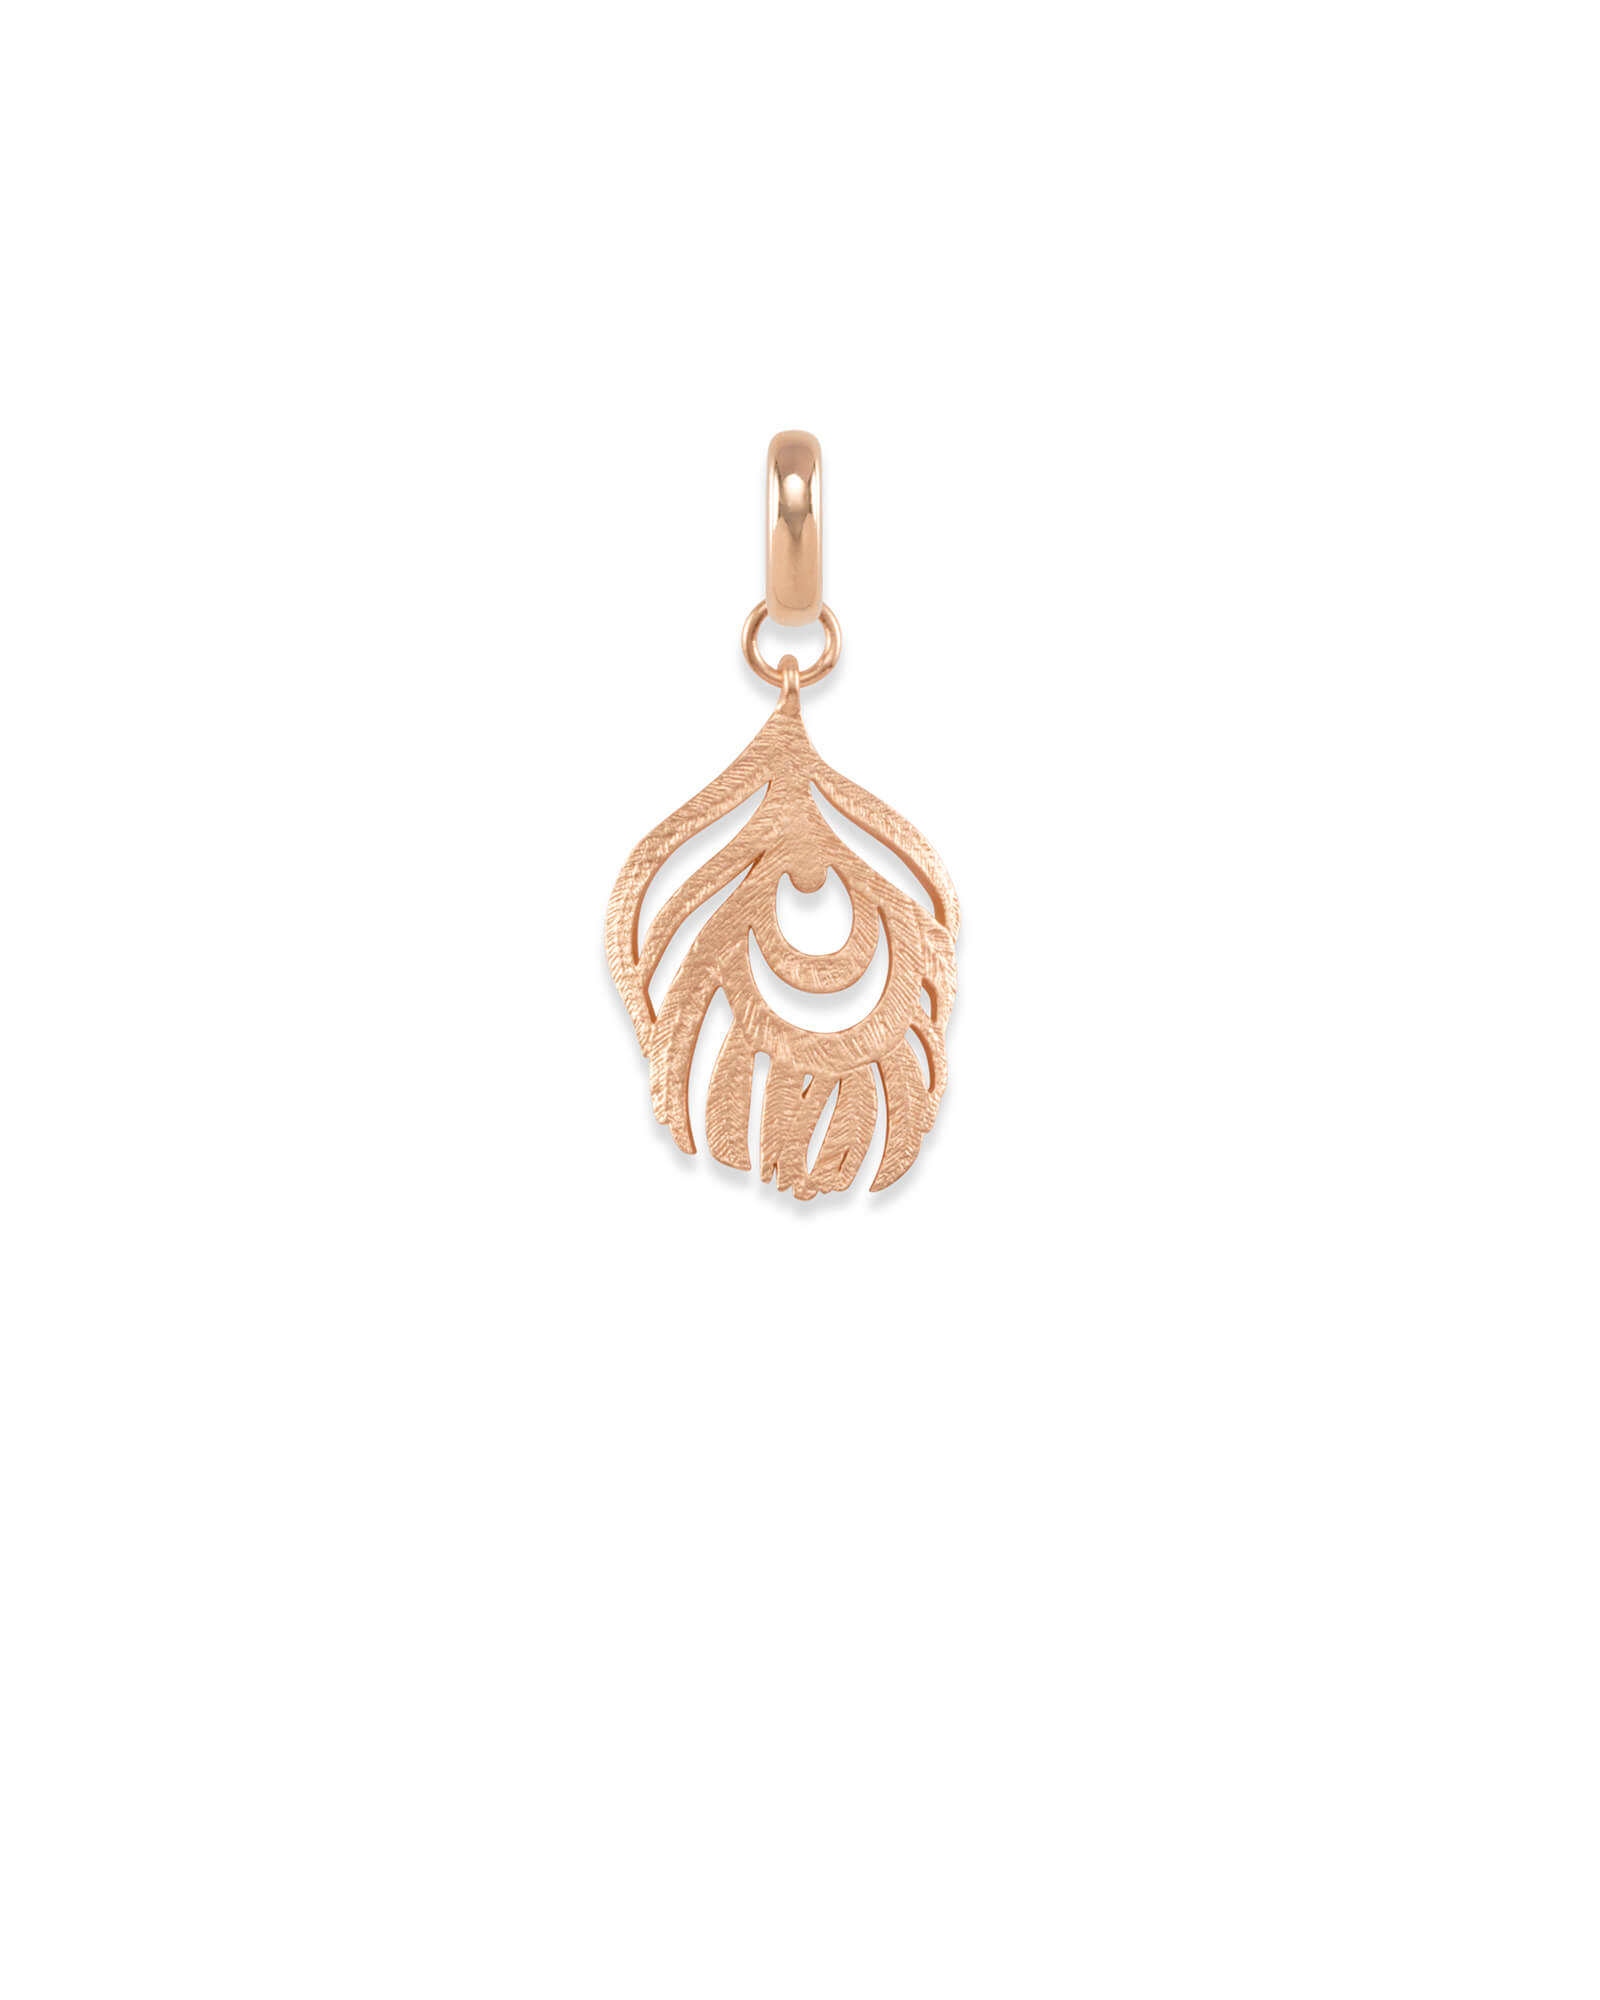 Peacock Feather Charm in Rose Gold